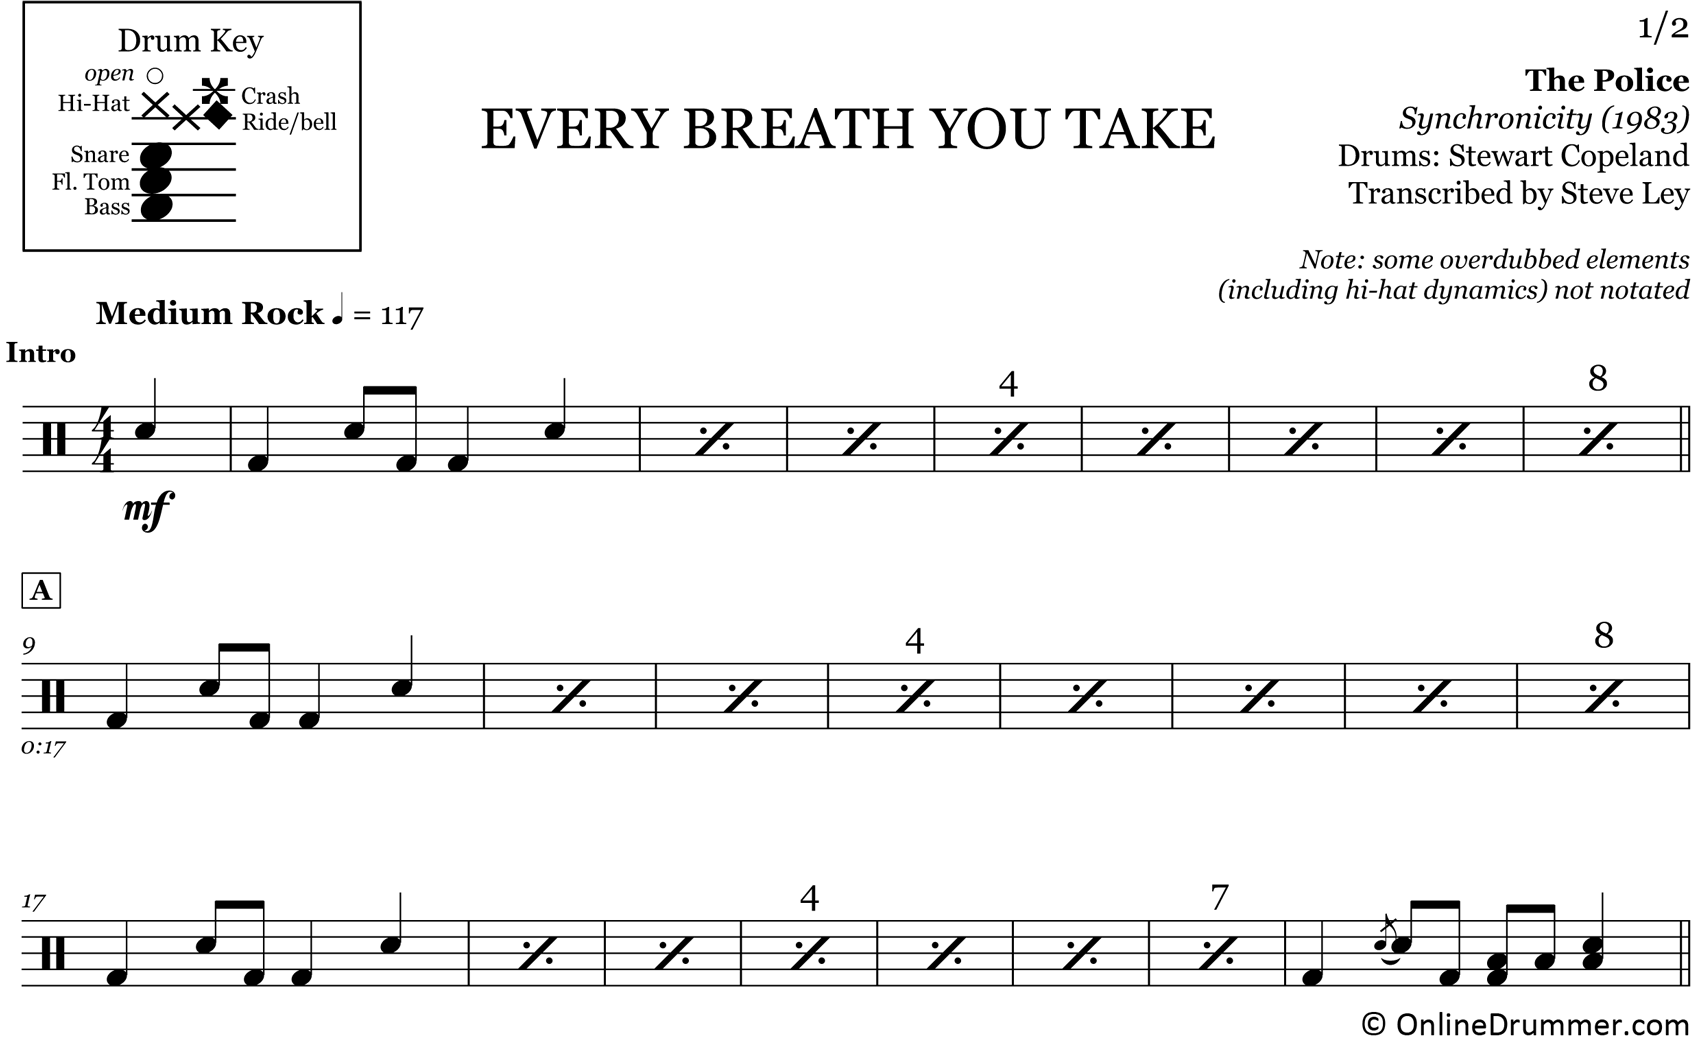 Every Breath You Take - The Police - Drum Sheet Music